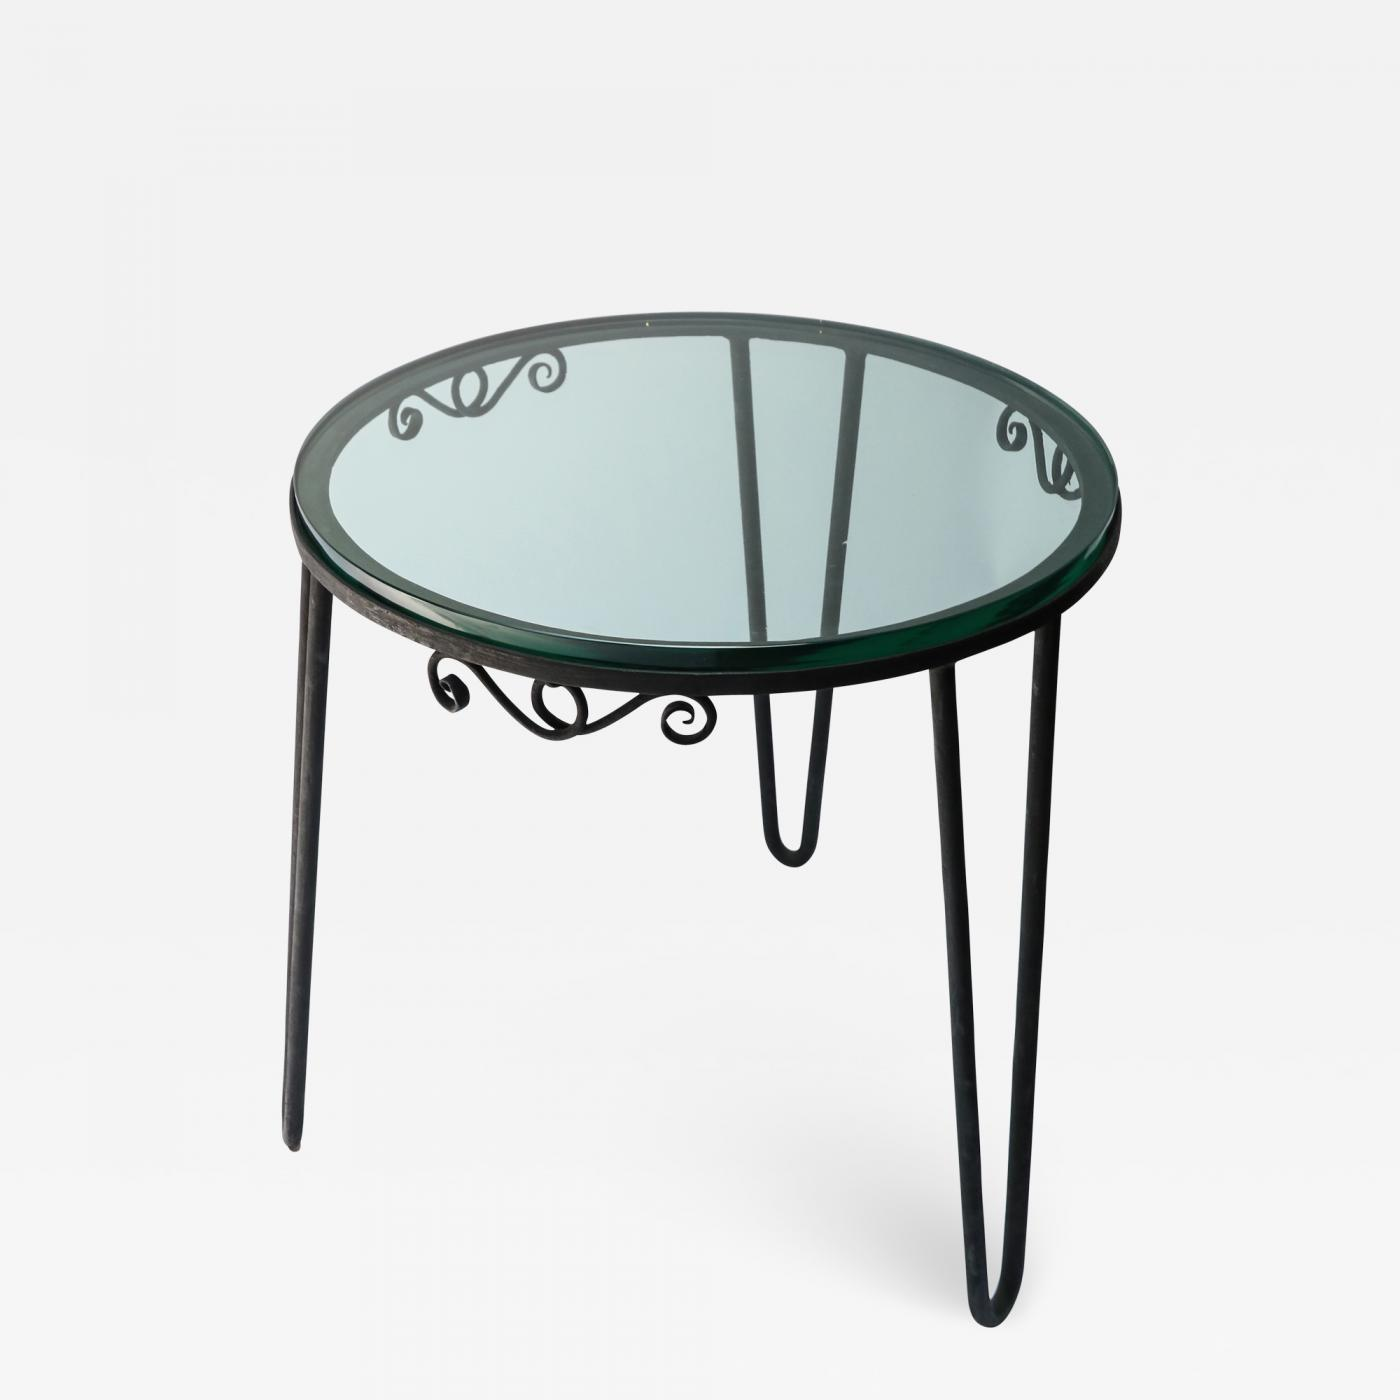 round metal italian side table with glass top outdoor listings furniture tables bar stool set bunnings couch brass coffee currey and company narrow white small wood nightstand